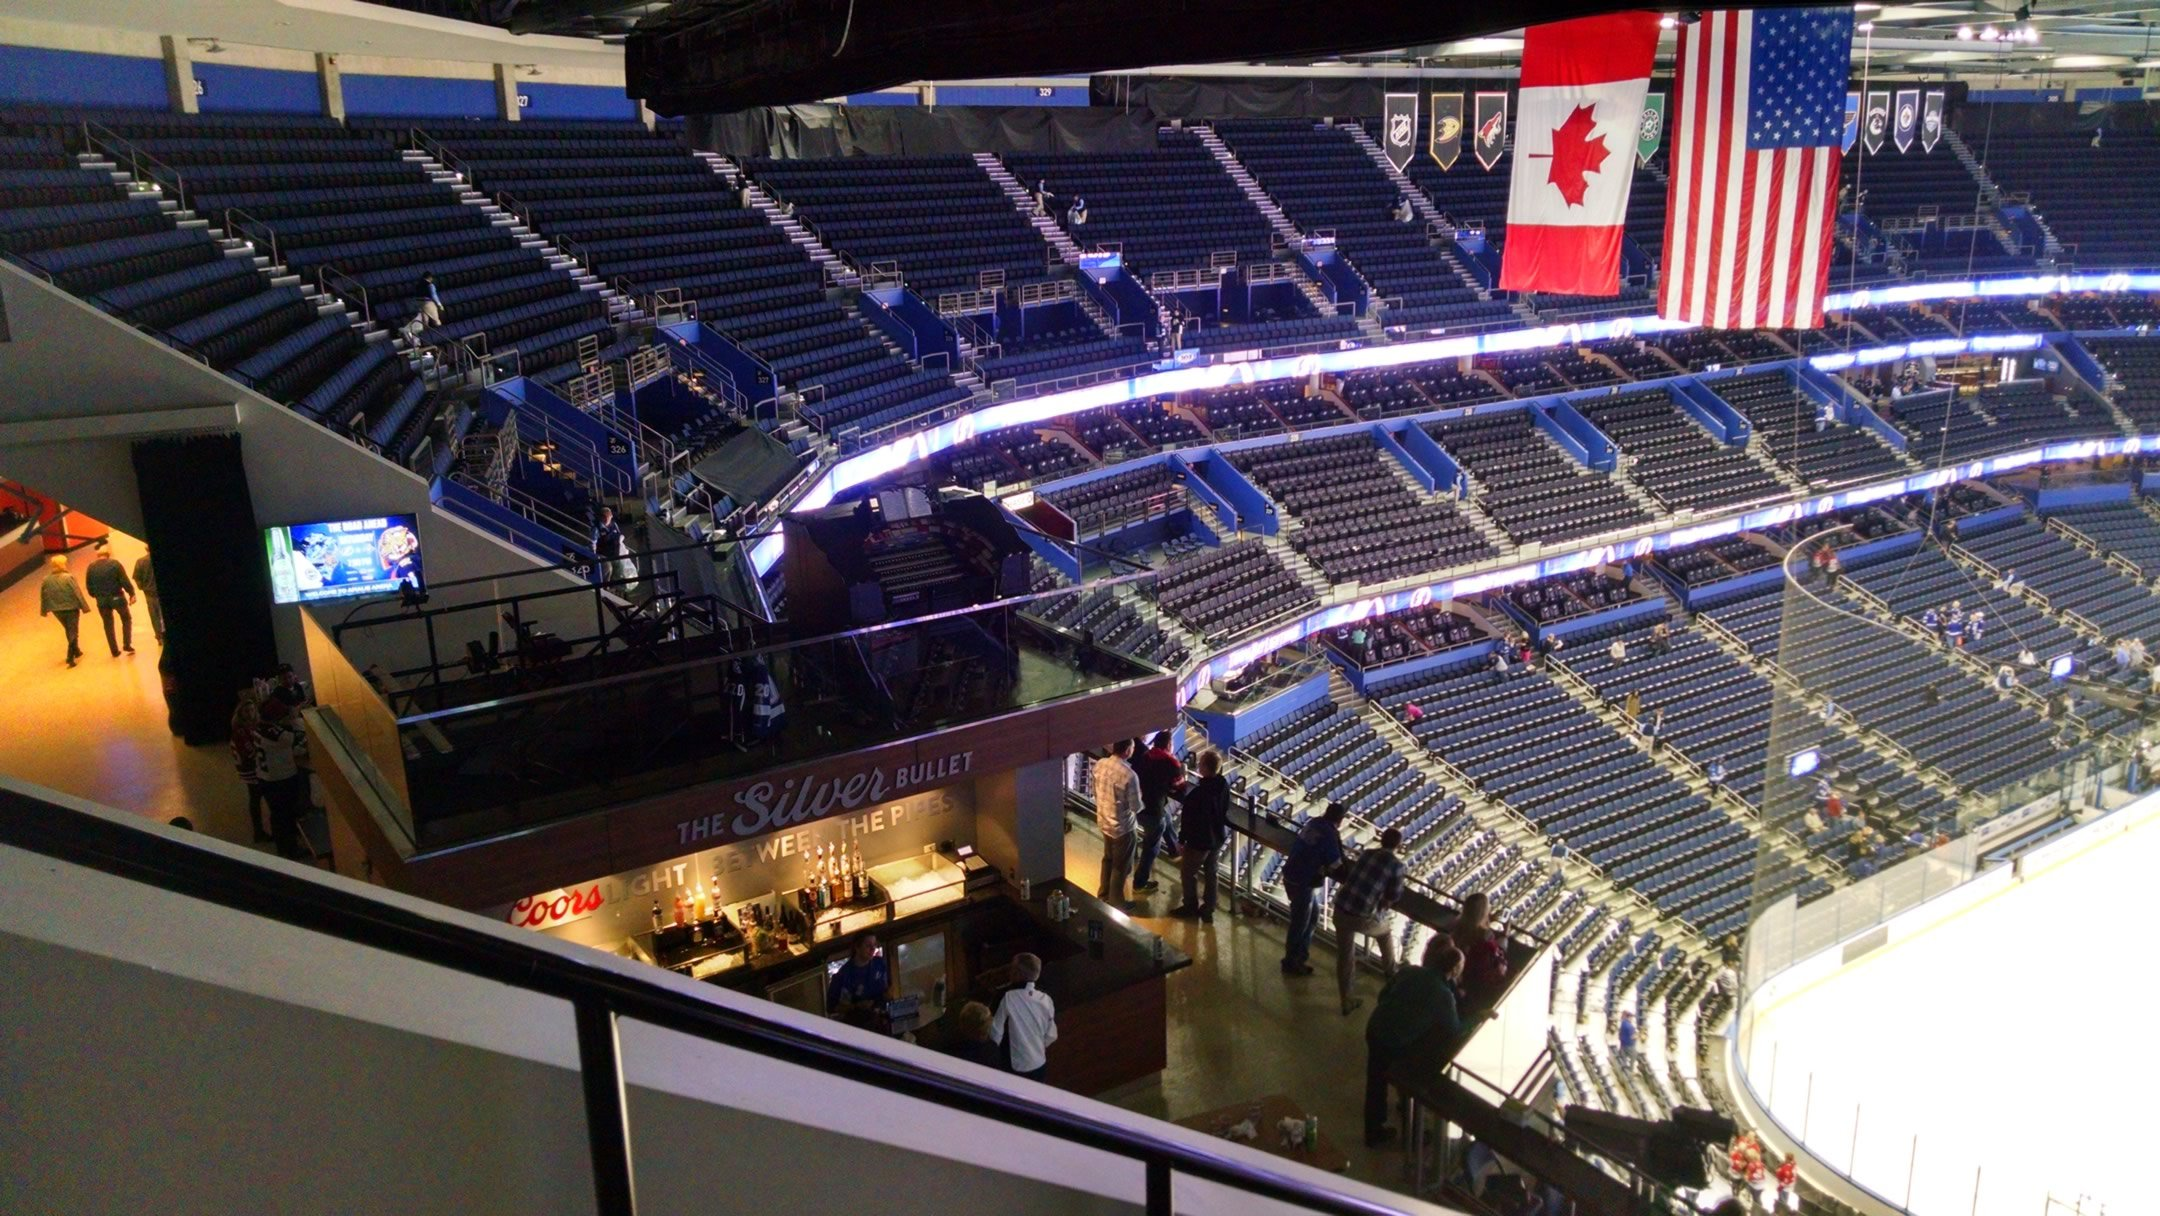 Other Photos From Amalie Arena